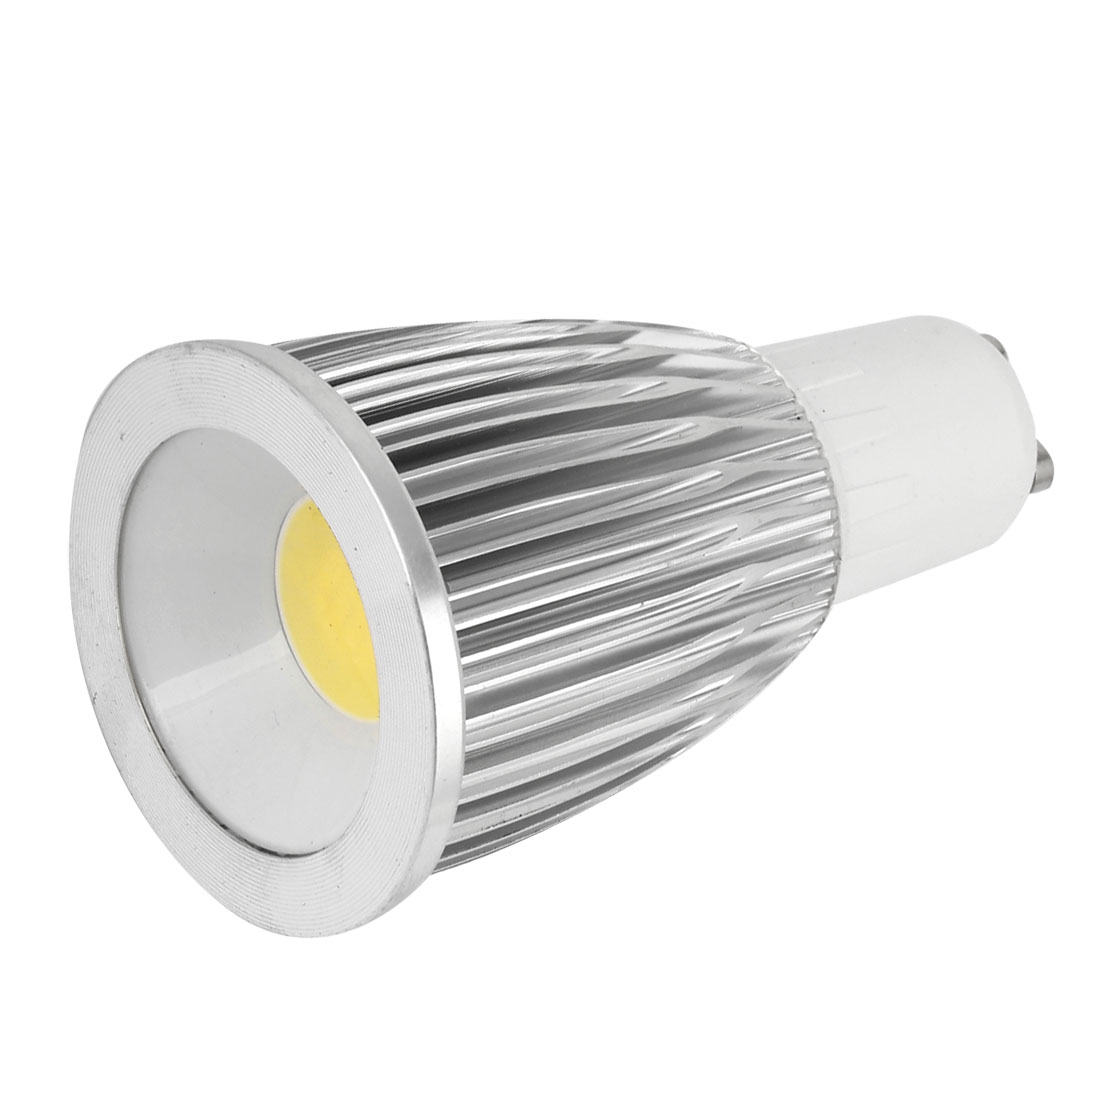 AC 85-265V 840-910LM 12W GU10 White Light COB LED Downlight Spot Lamp